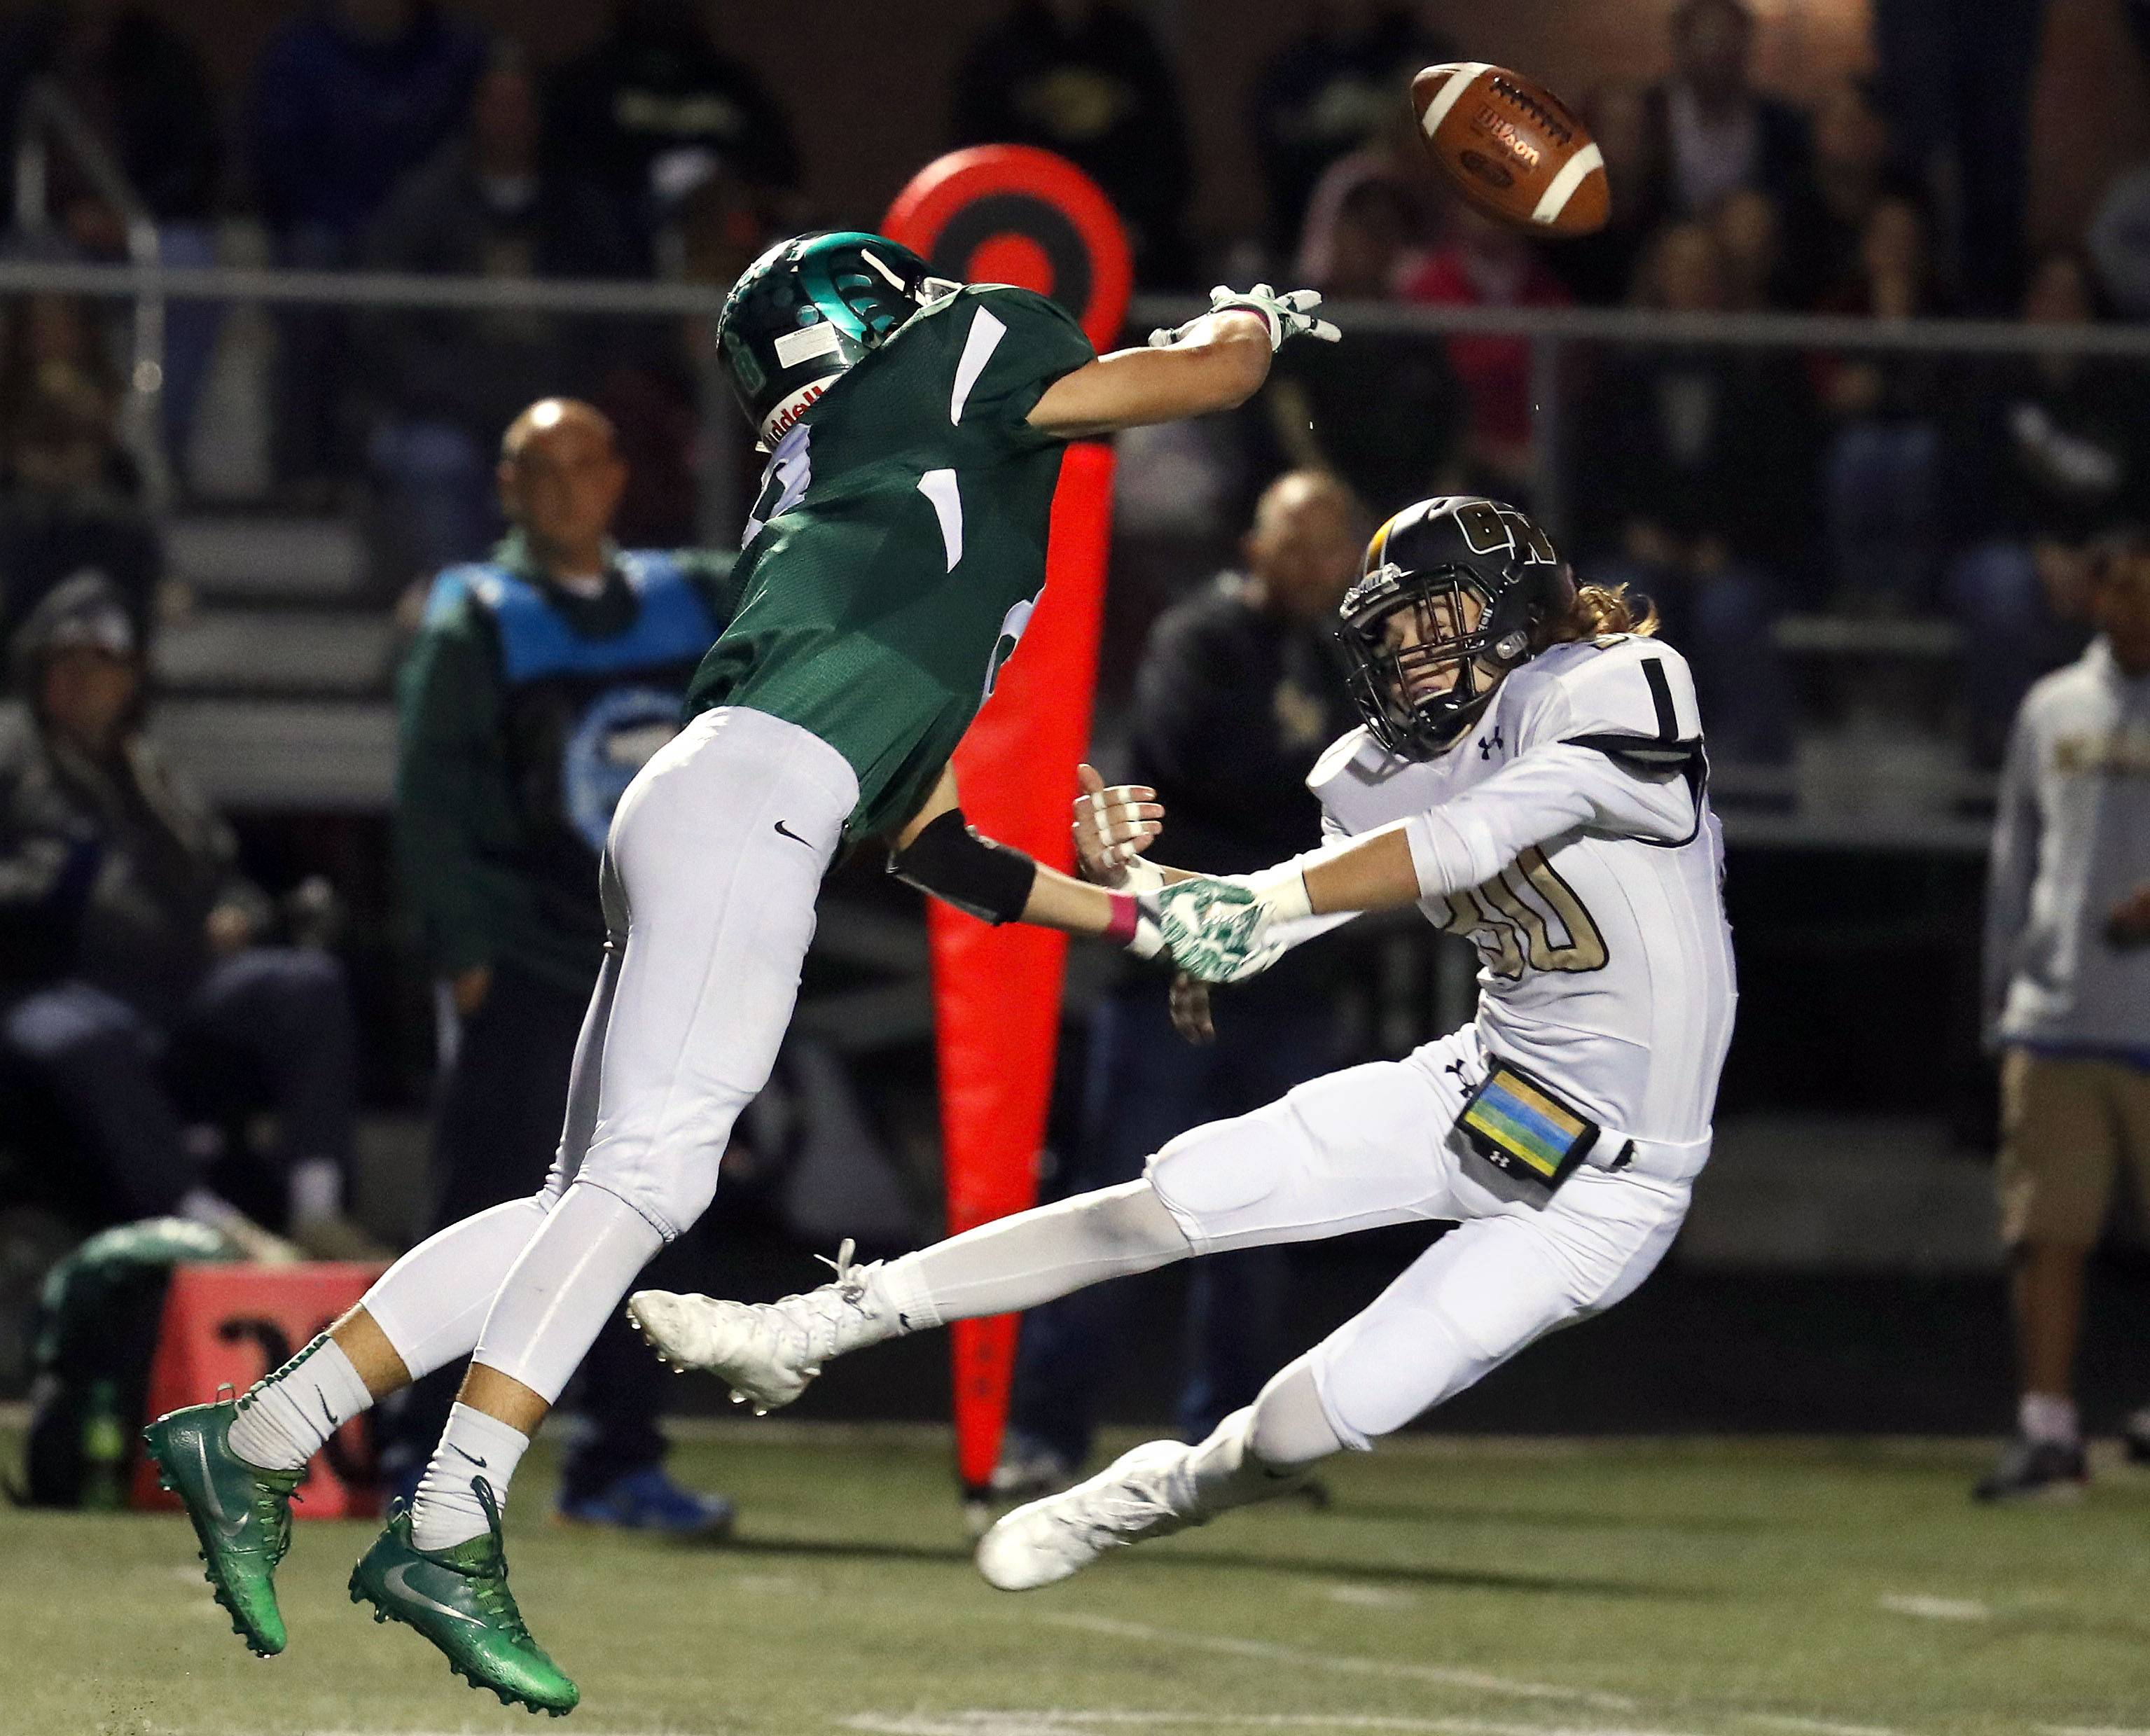 Grayslake Central's Peter Brewster, left, and Grayslake North's Garrick McGregor go up for a pass Friday night at Grayslake Central.